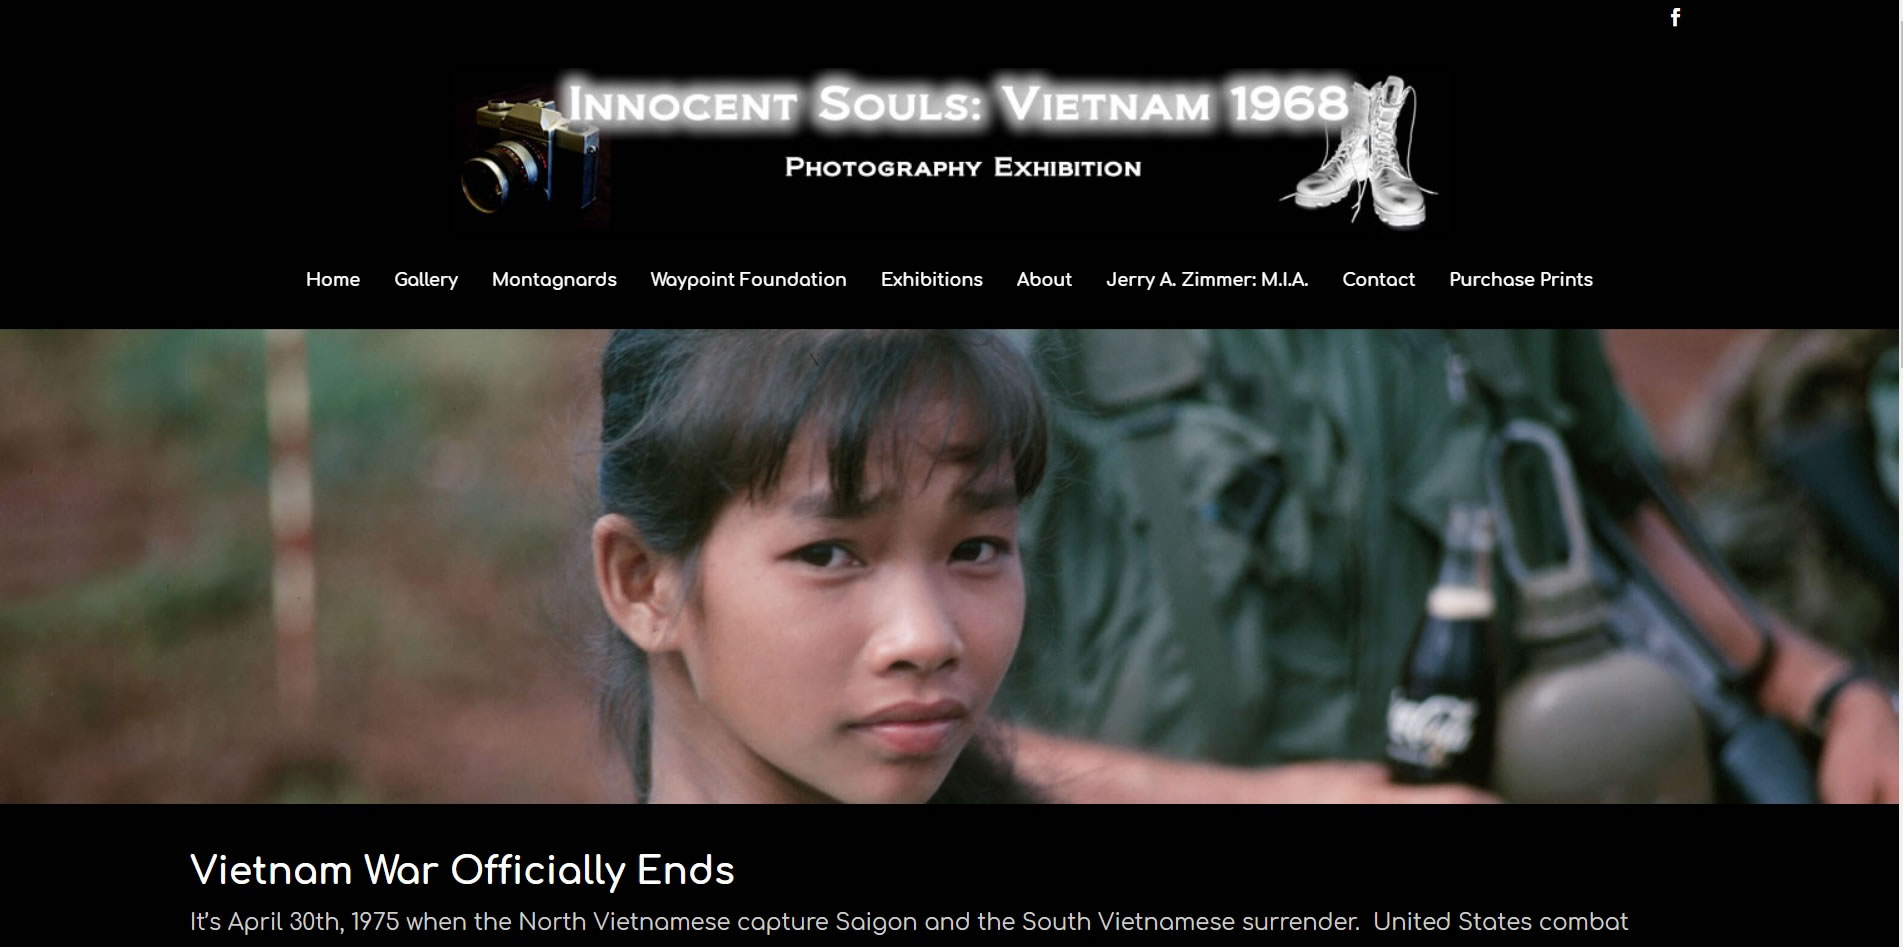 Innocent Souls 1968 Vietnam Photos from Vietnam Vietnam Photography Exhibition Images of Vietnam